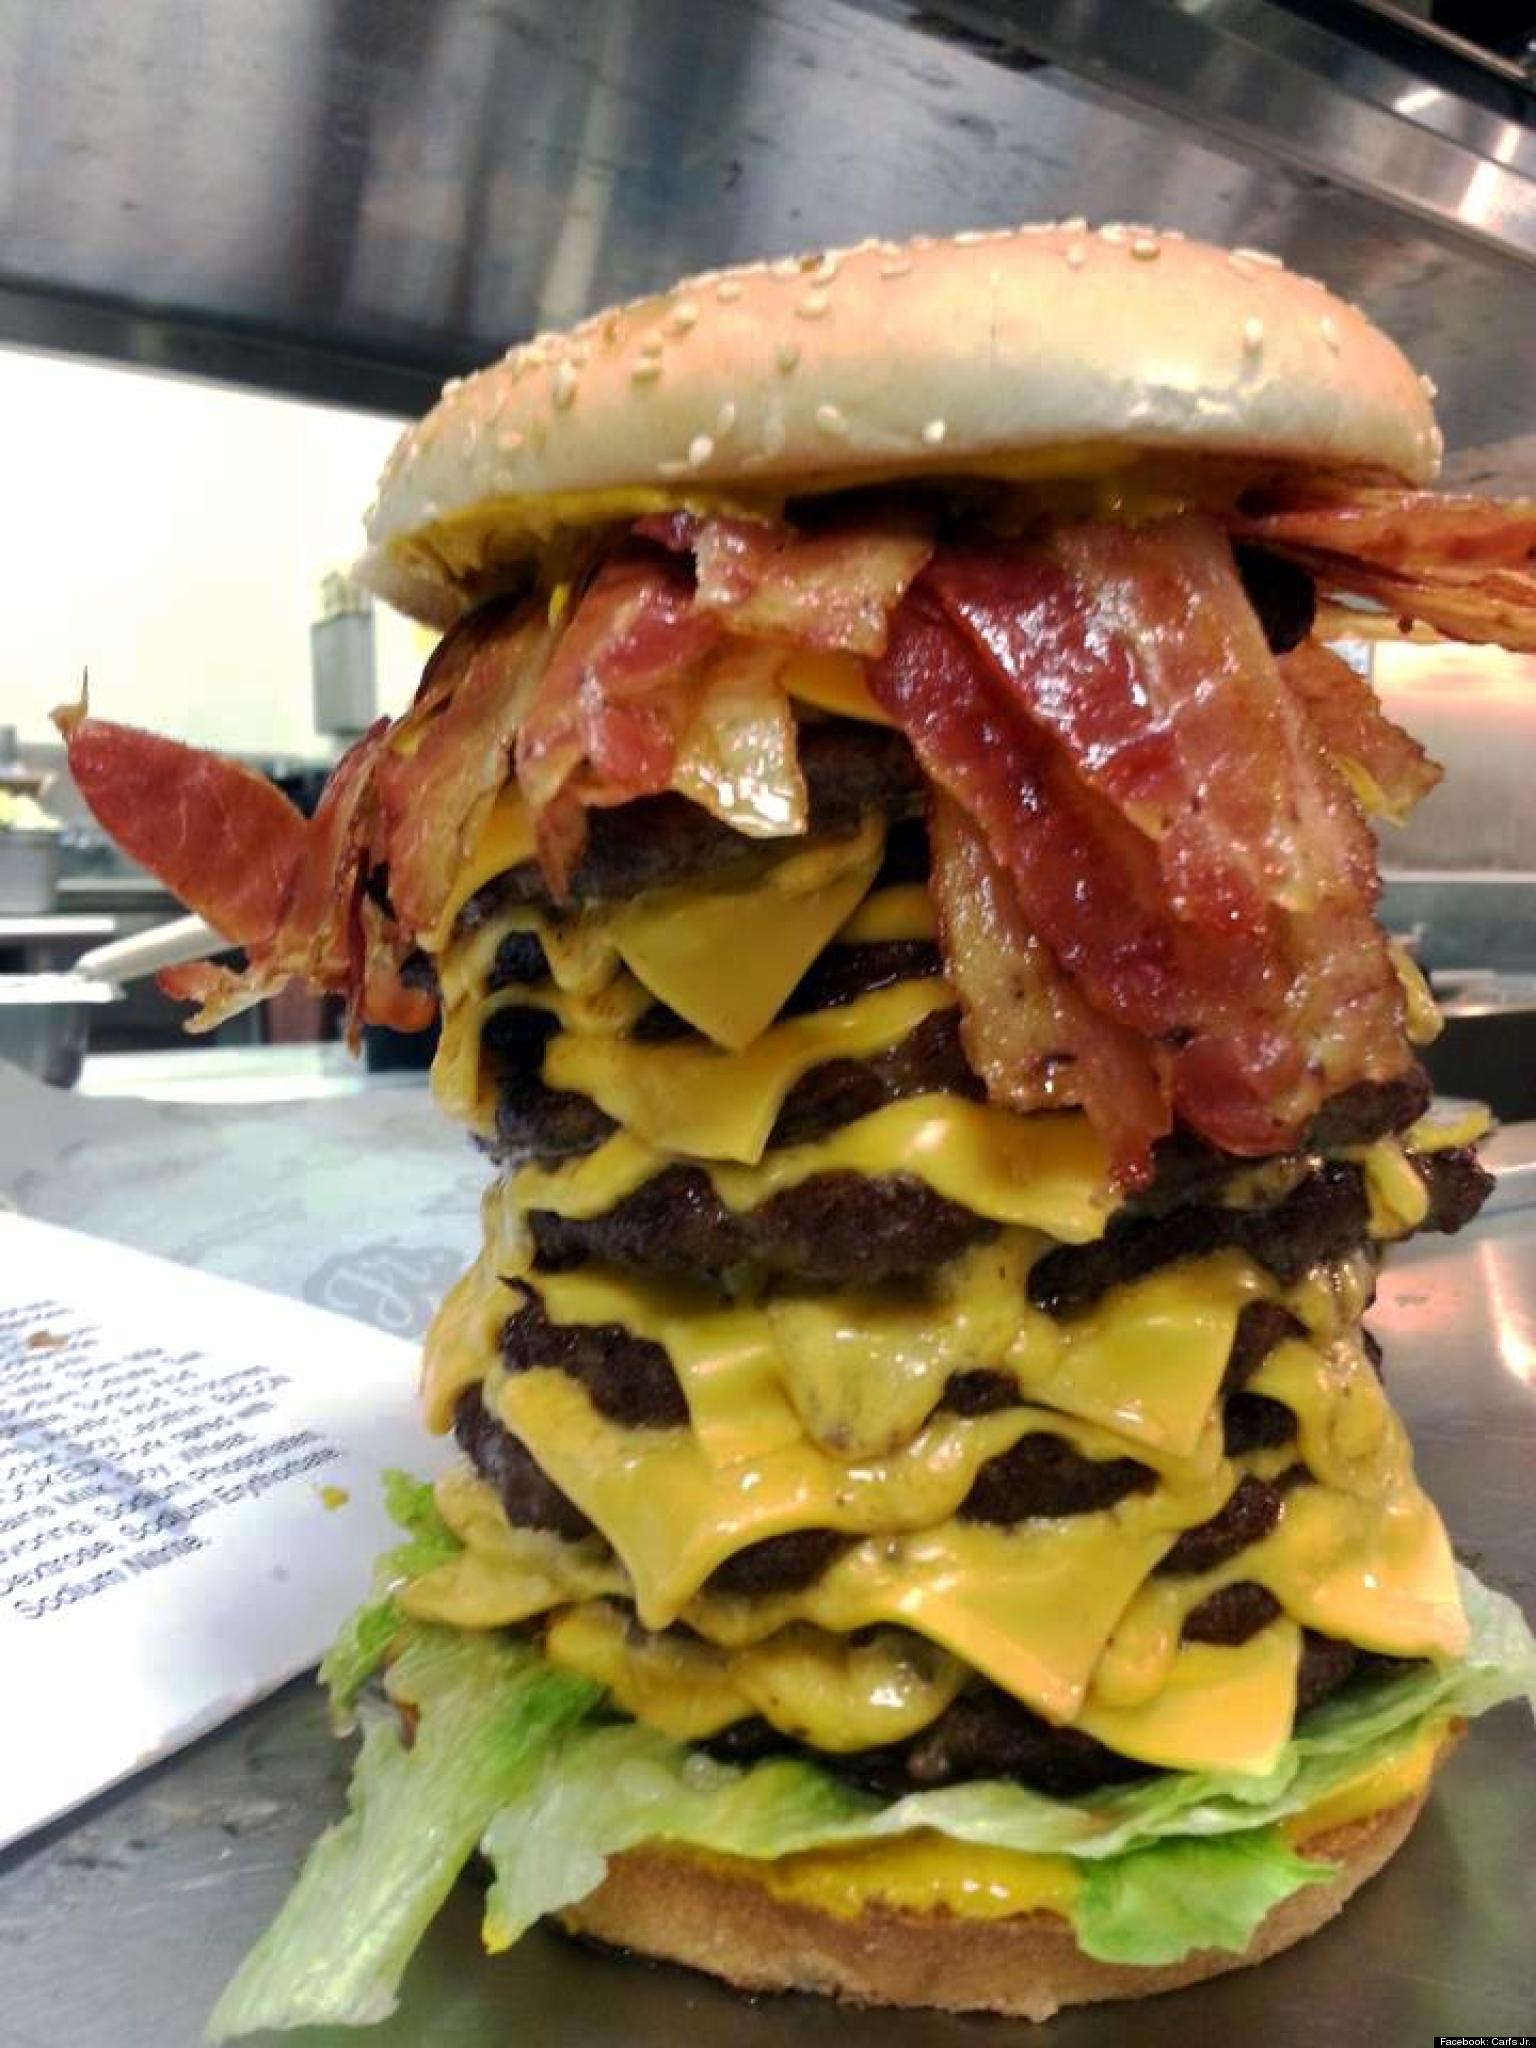 '12x12x12' Burger From Carl's Jr. Is An Apocalyptic Wonder ...